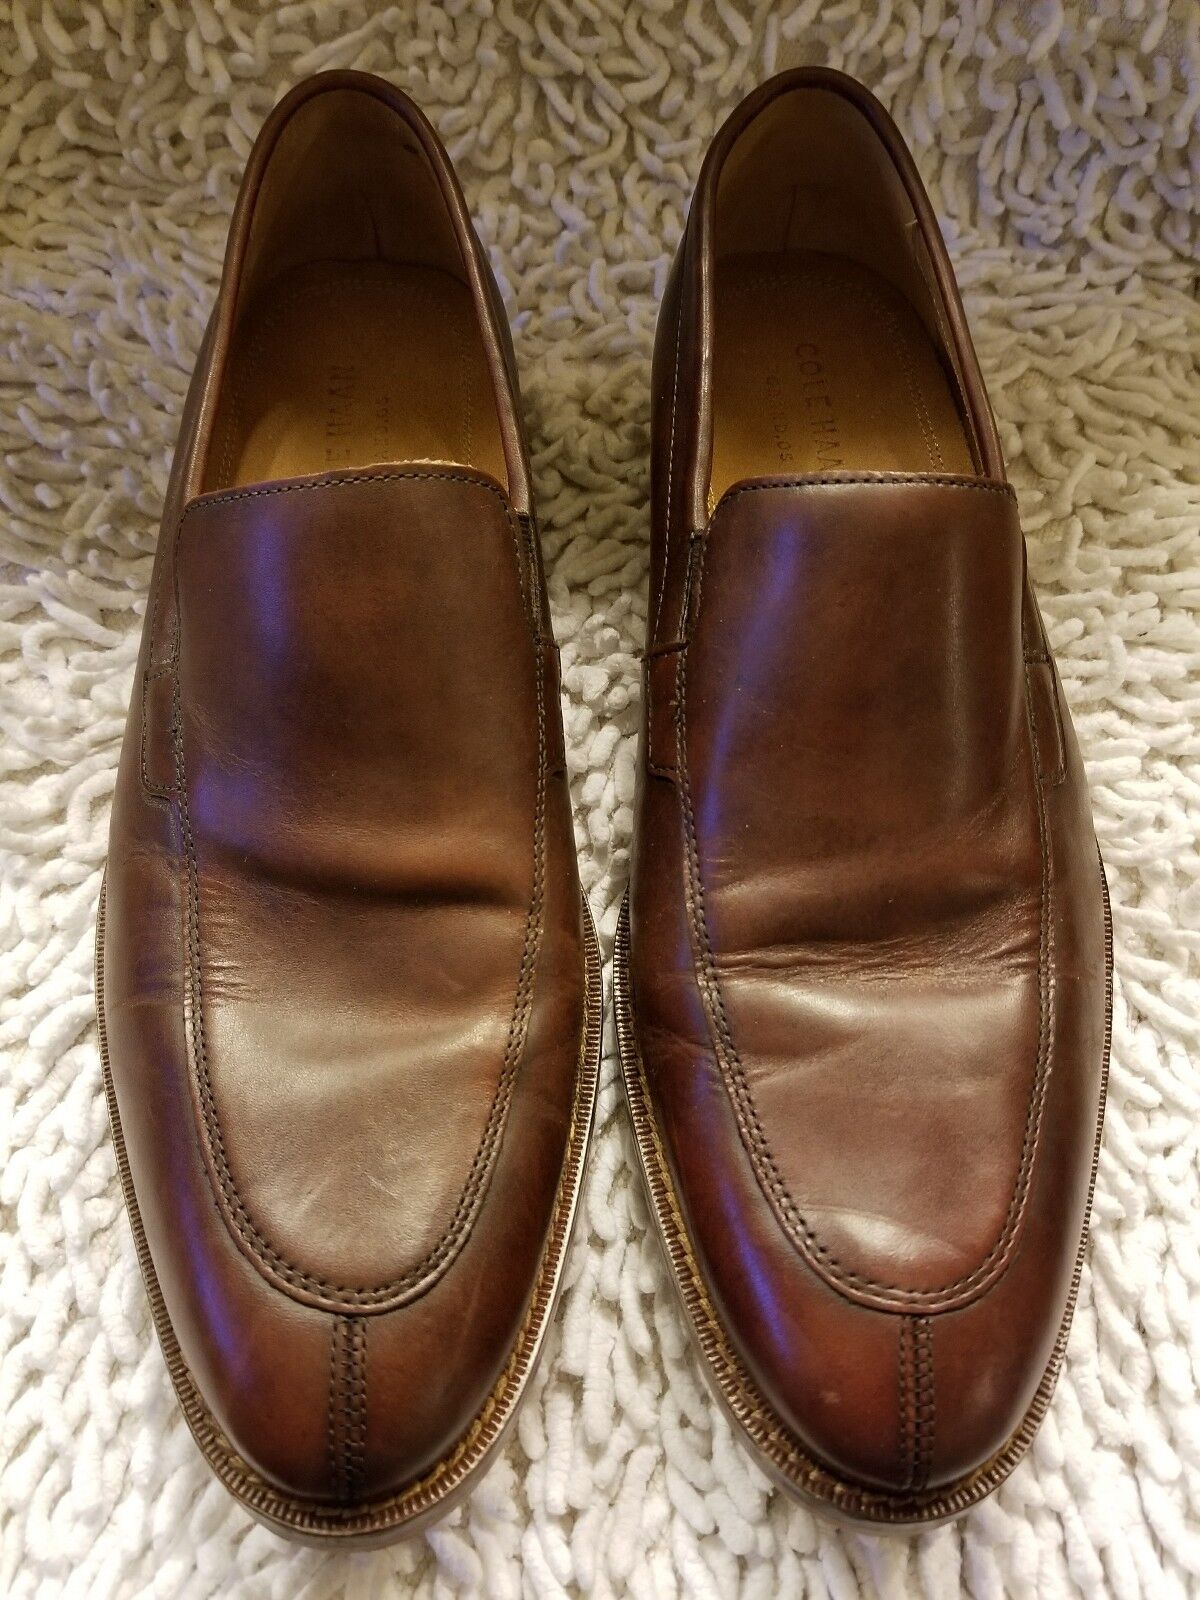 Cole Haan Madison Spl. Venetian II (C12854) Dk. Brown Split Toe 9M